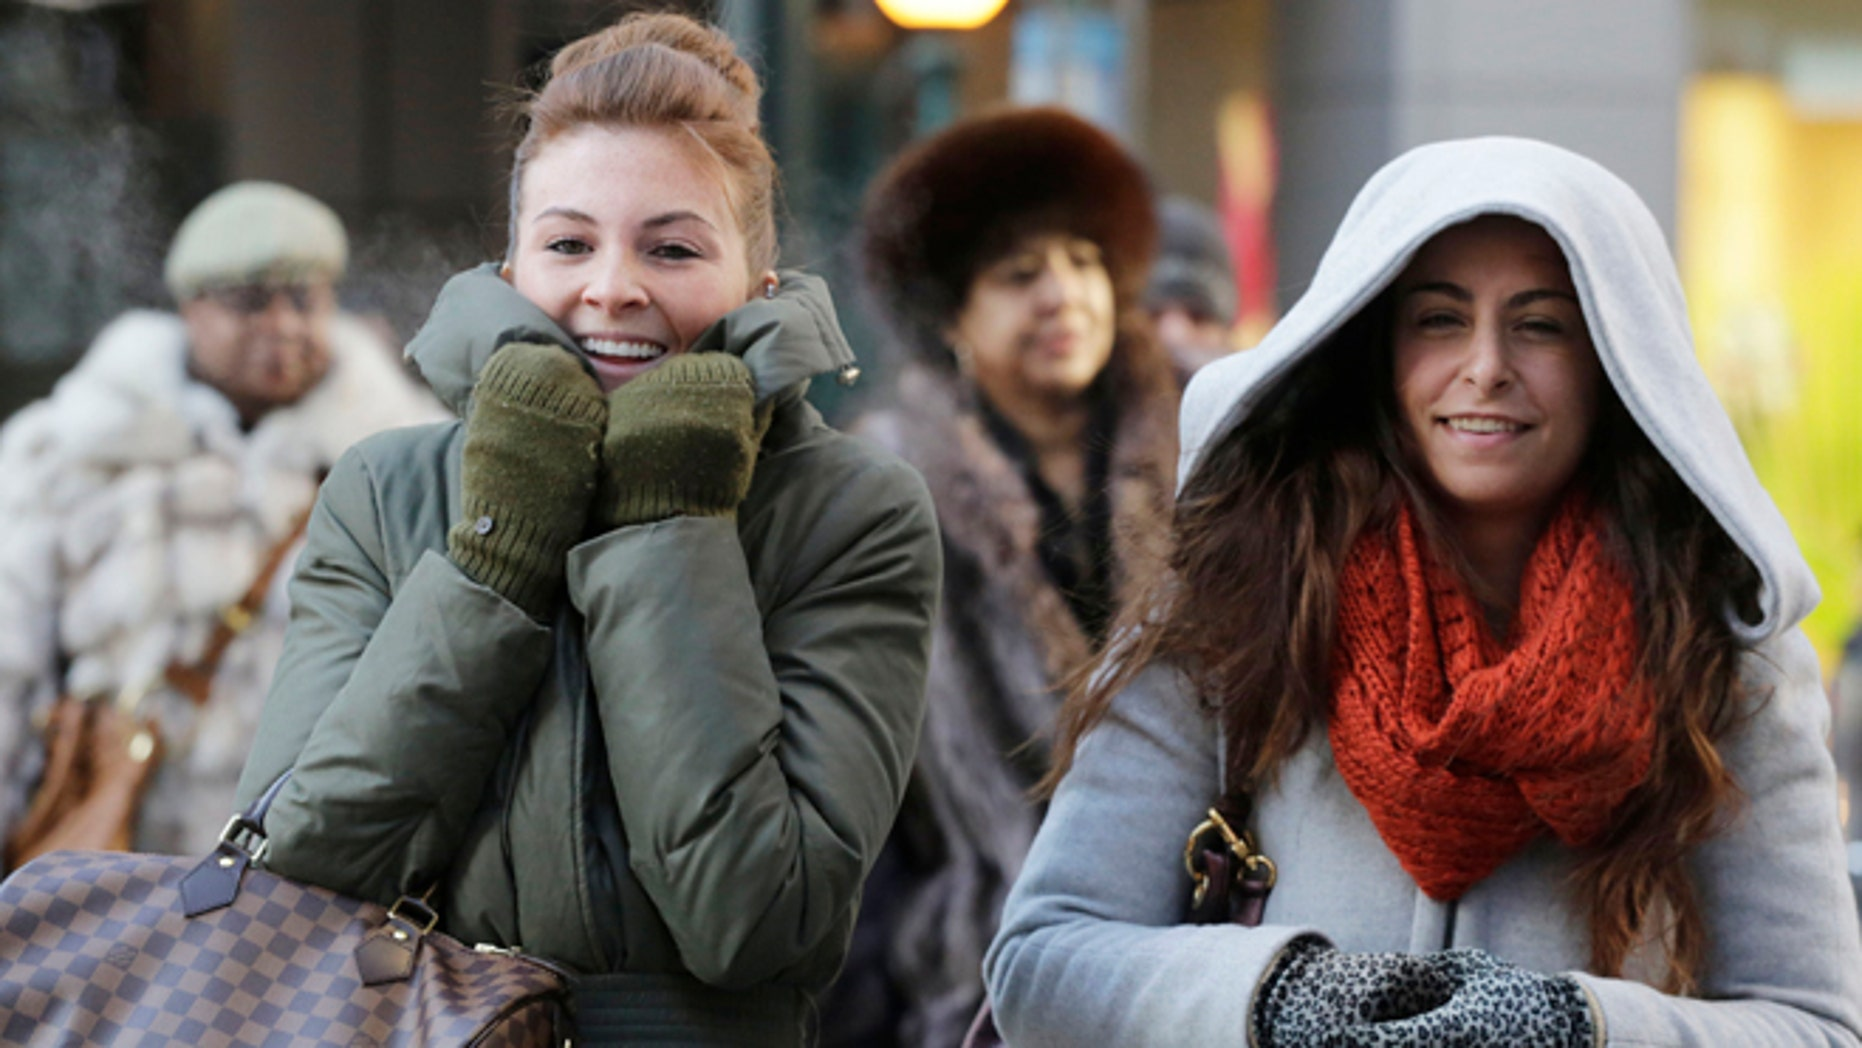 Women are bundled up against the cold on New York's 34th Street.